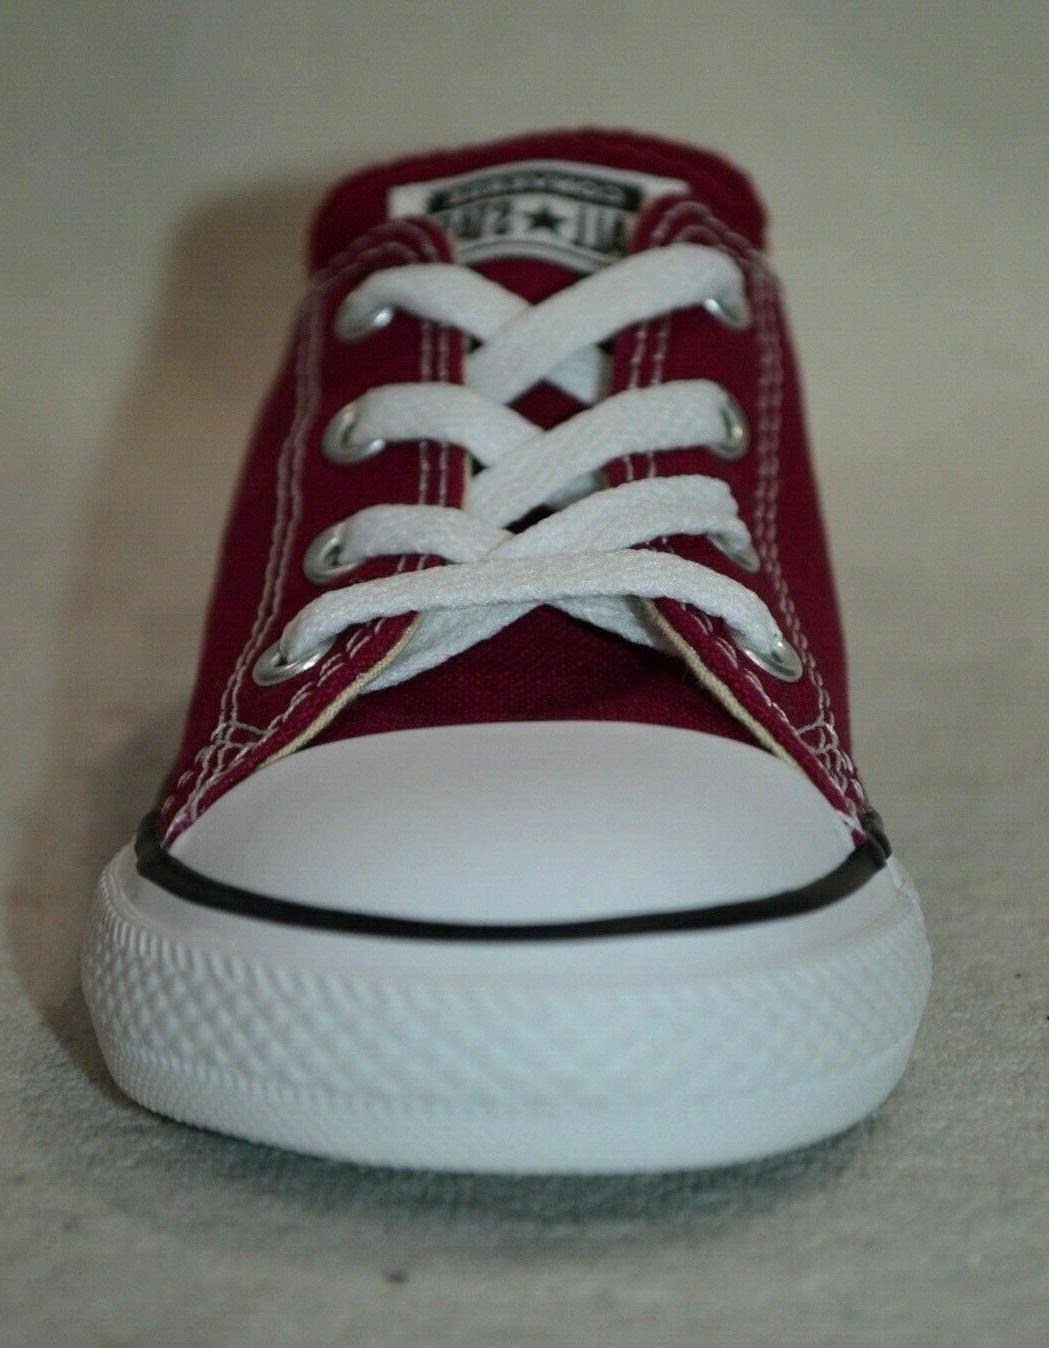 Converse® OX Burgundy Toddler Boy/Girl's Shoes-Size